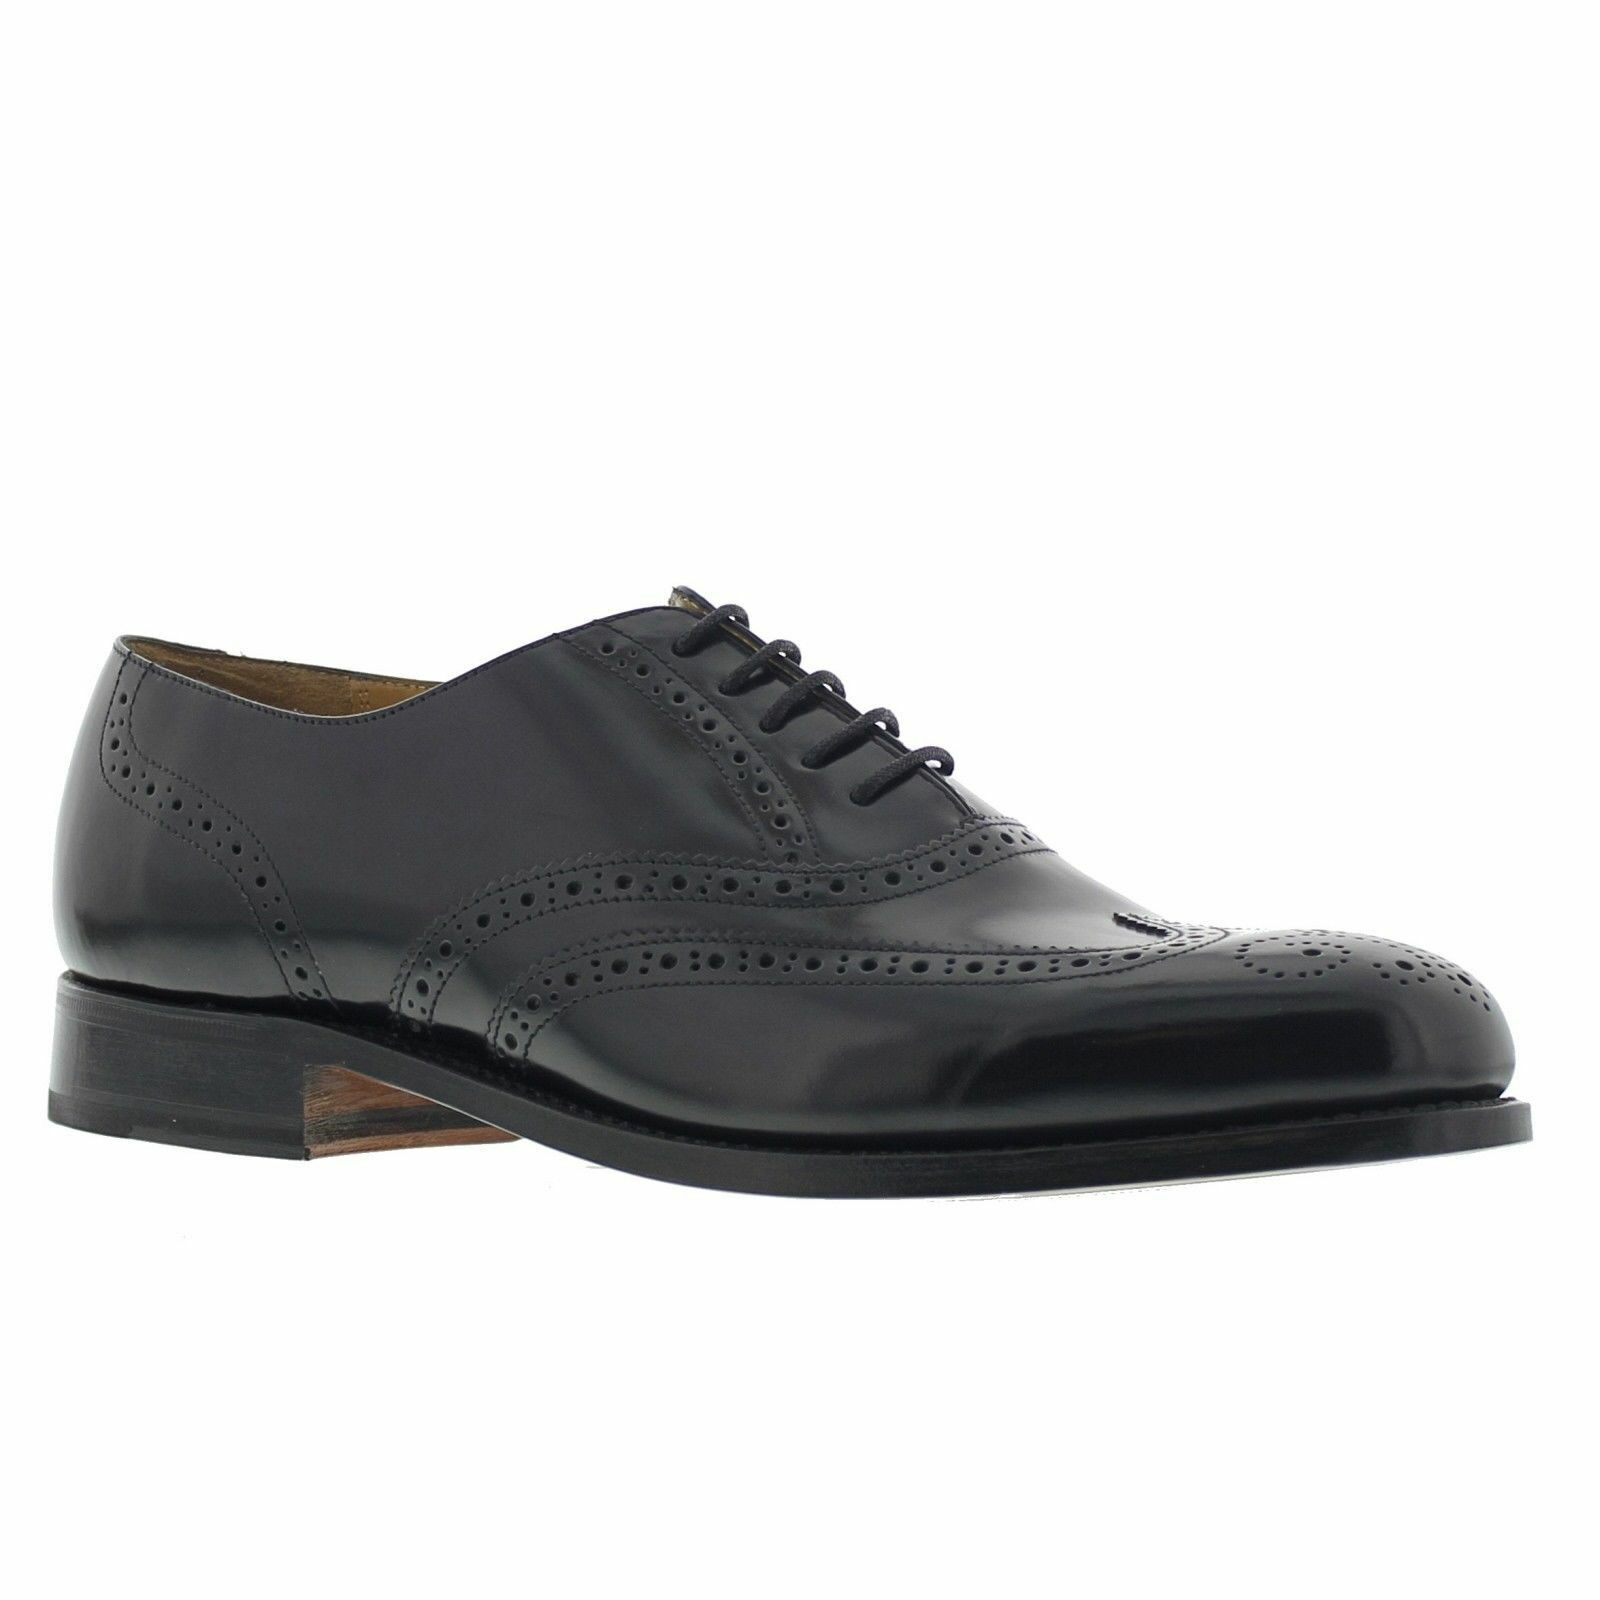 Barker Glasgow Goodyear Welted Brogue Leder Schuhes schwarz Calf 202B